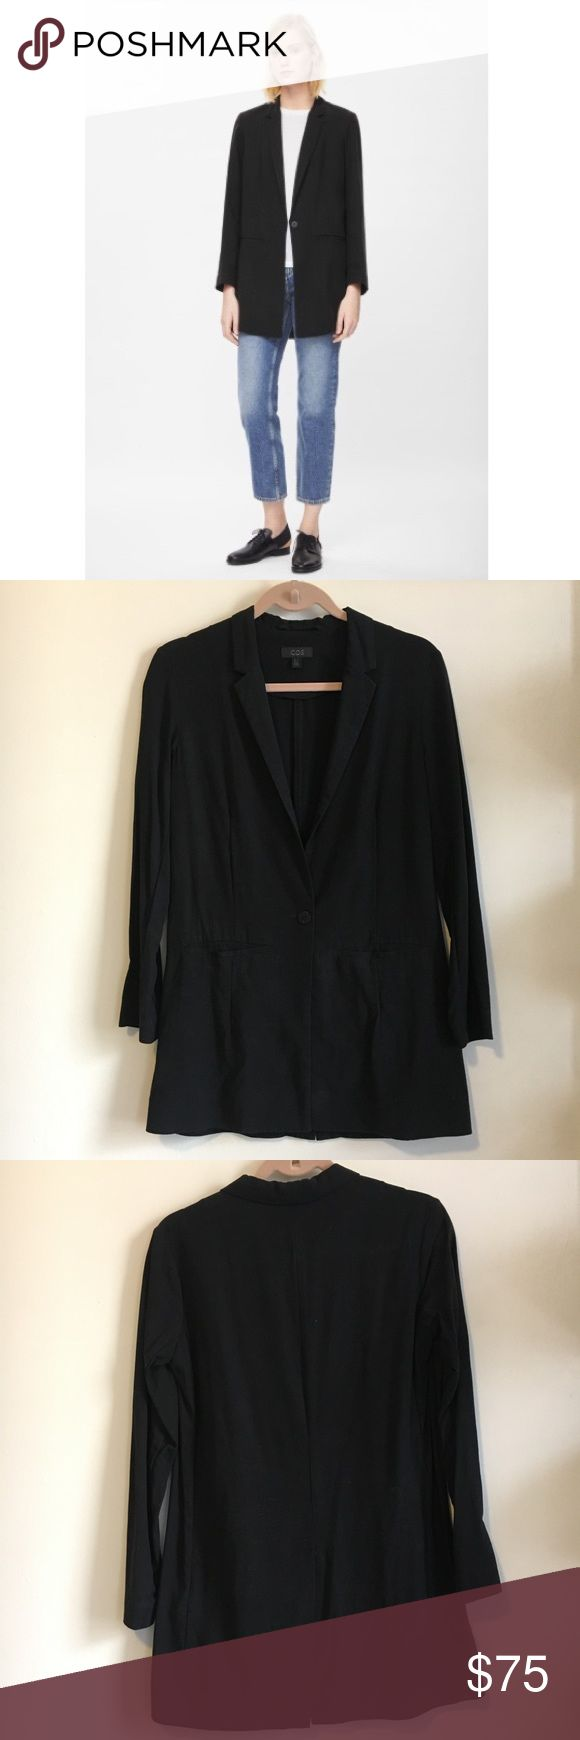 COS Long Slim-fit Blazer Made from lightweight unlined fabric with a subtle textured feel, this blazer has a tailored slim fit... elongated style, with a deep v-neckline, narrow notched lapels and two welt pockets on the front... needs a good iron/steam 😉 but in great condition overall (wore this 2-3 times) COS Jackets & Coats Blazers